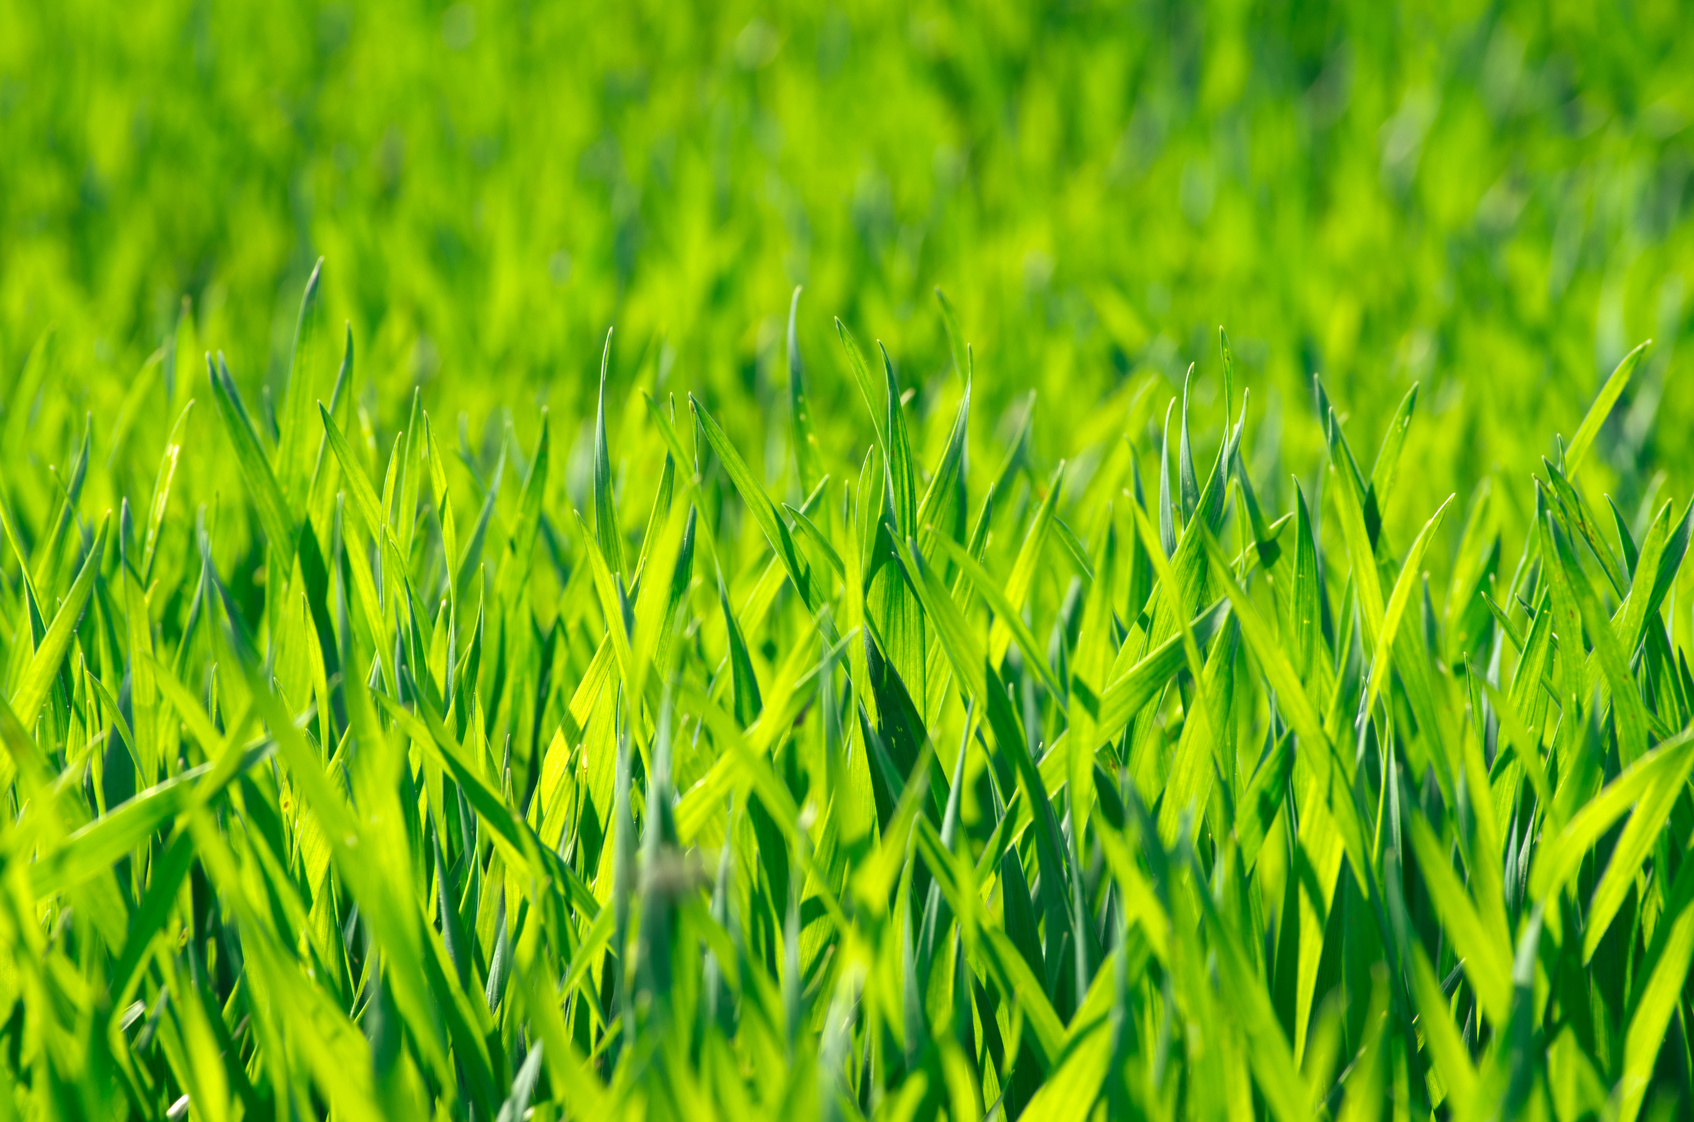 Green grass texture from a field